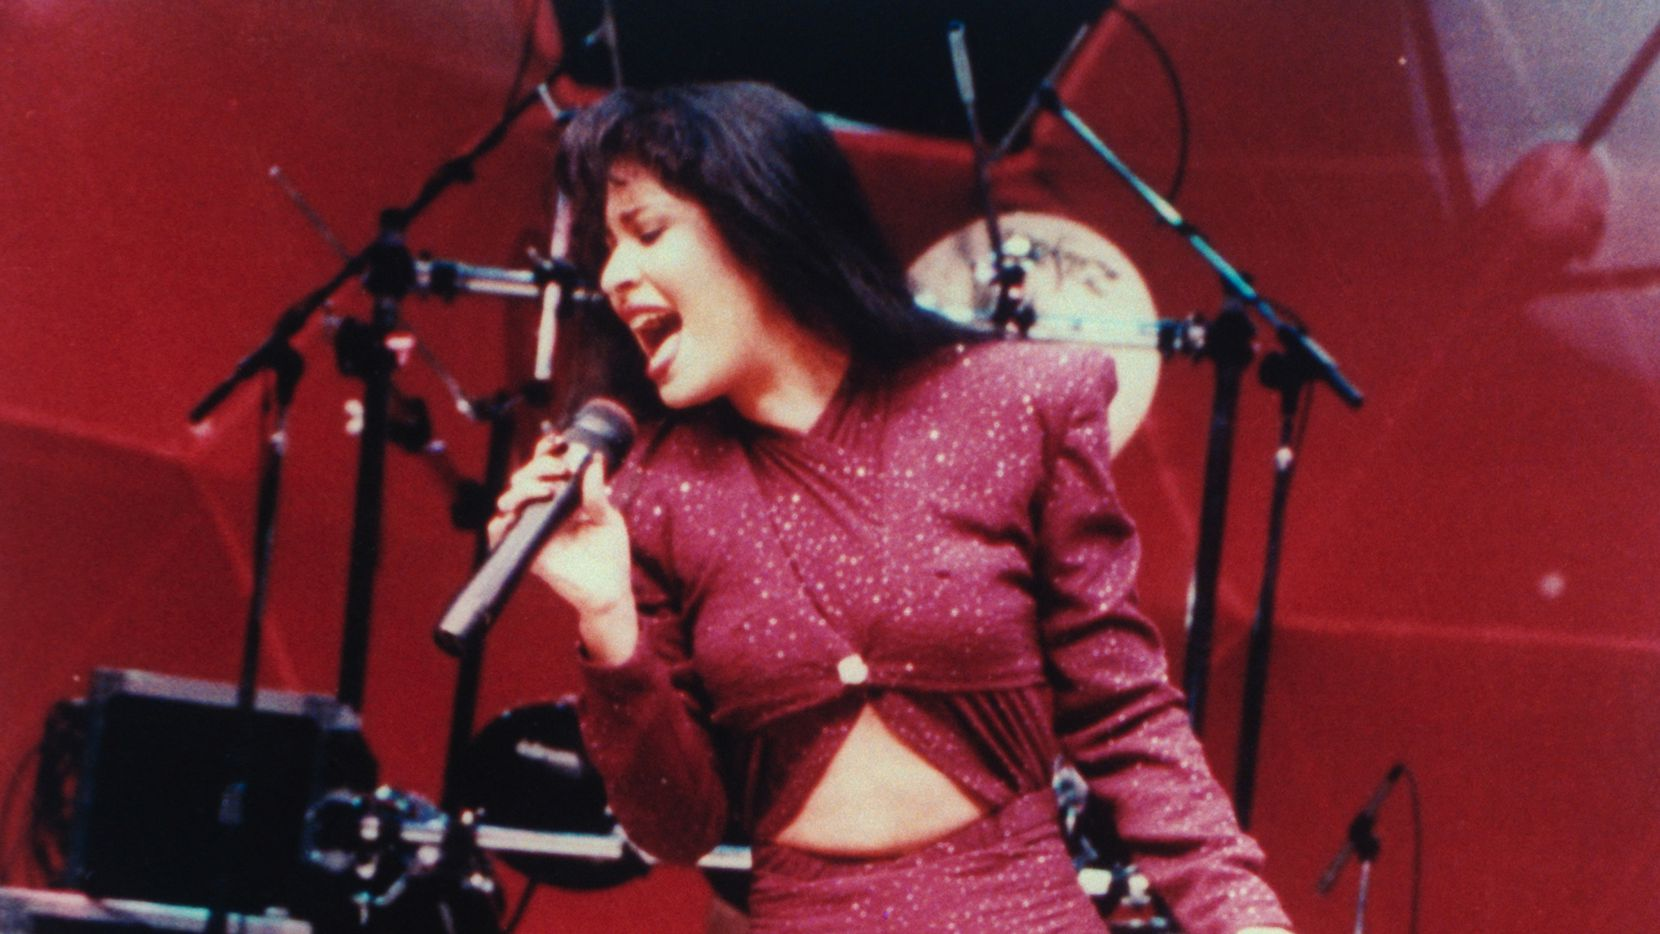 Selena is shown performing in concert; one month later she would be shot and killed by Yolanda Saldivar, the president of her fan club, after confronting her on charges that she was embezzling funds. (Photo by Arlene Richie)